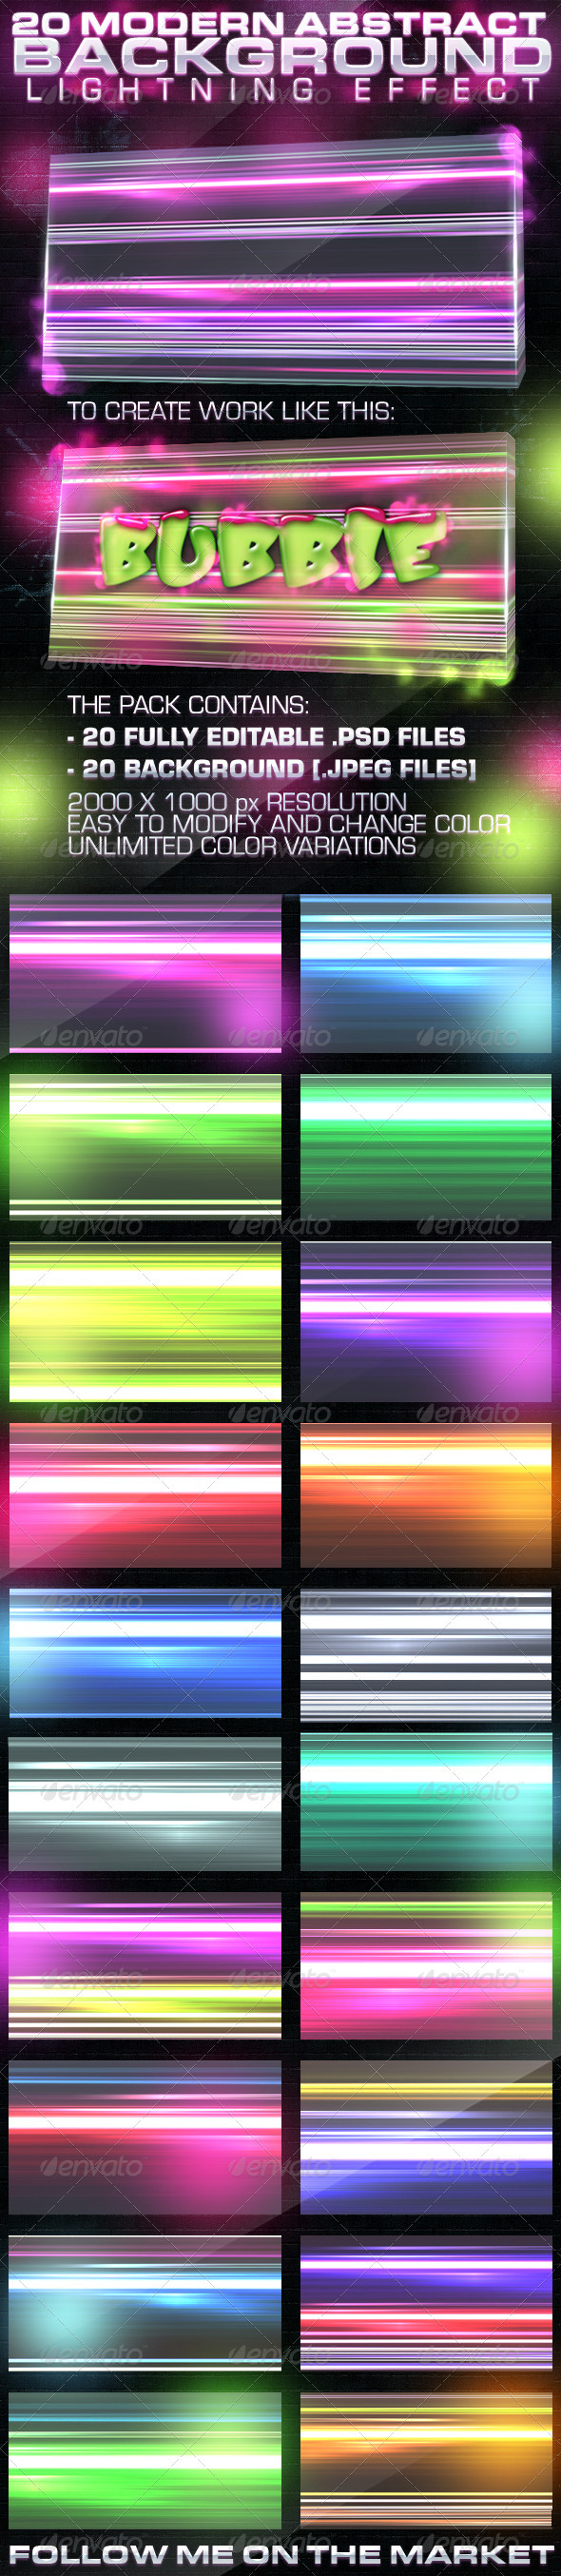 20 Abstract Background Lightning Effect - Abstract Backgrounds